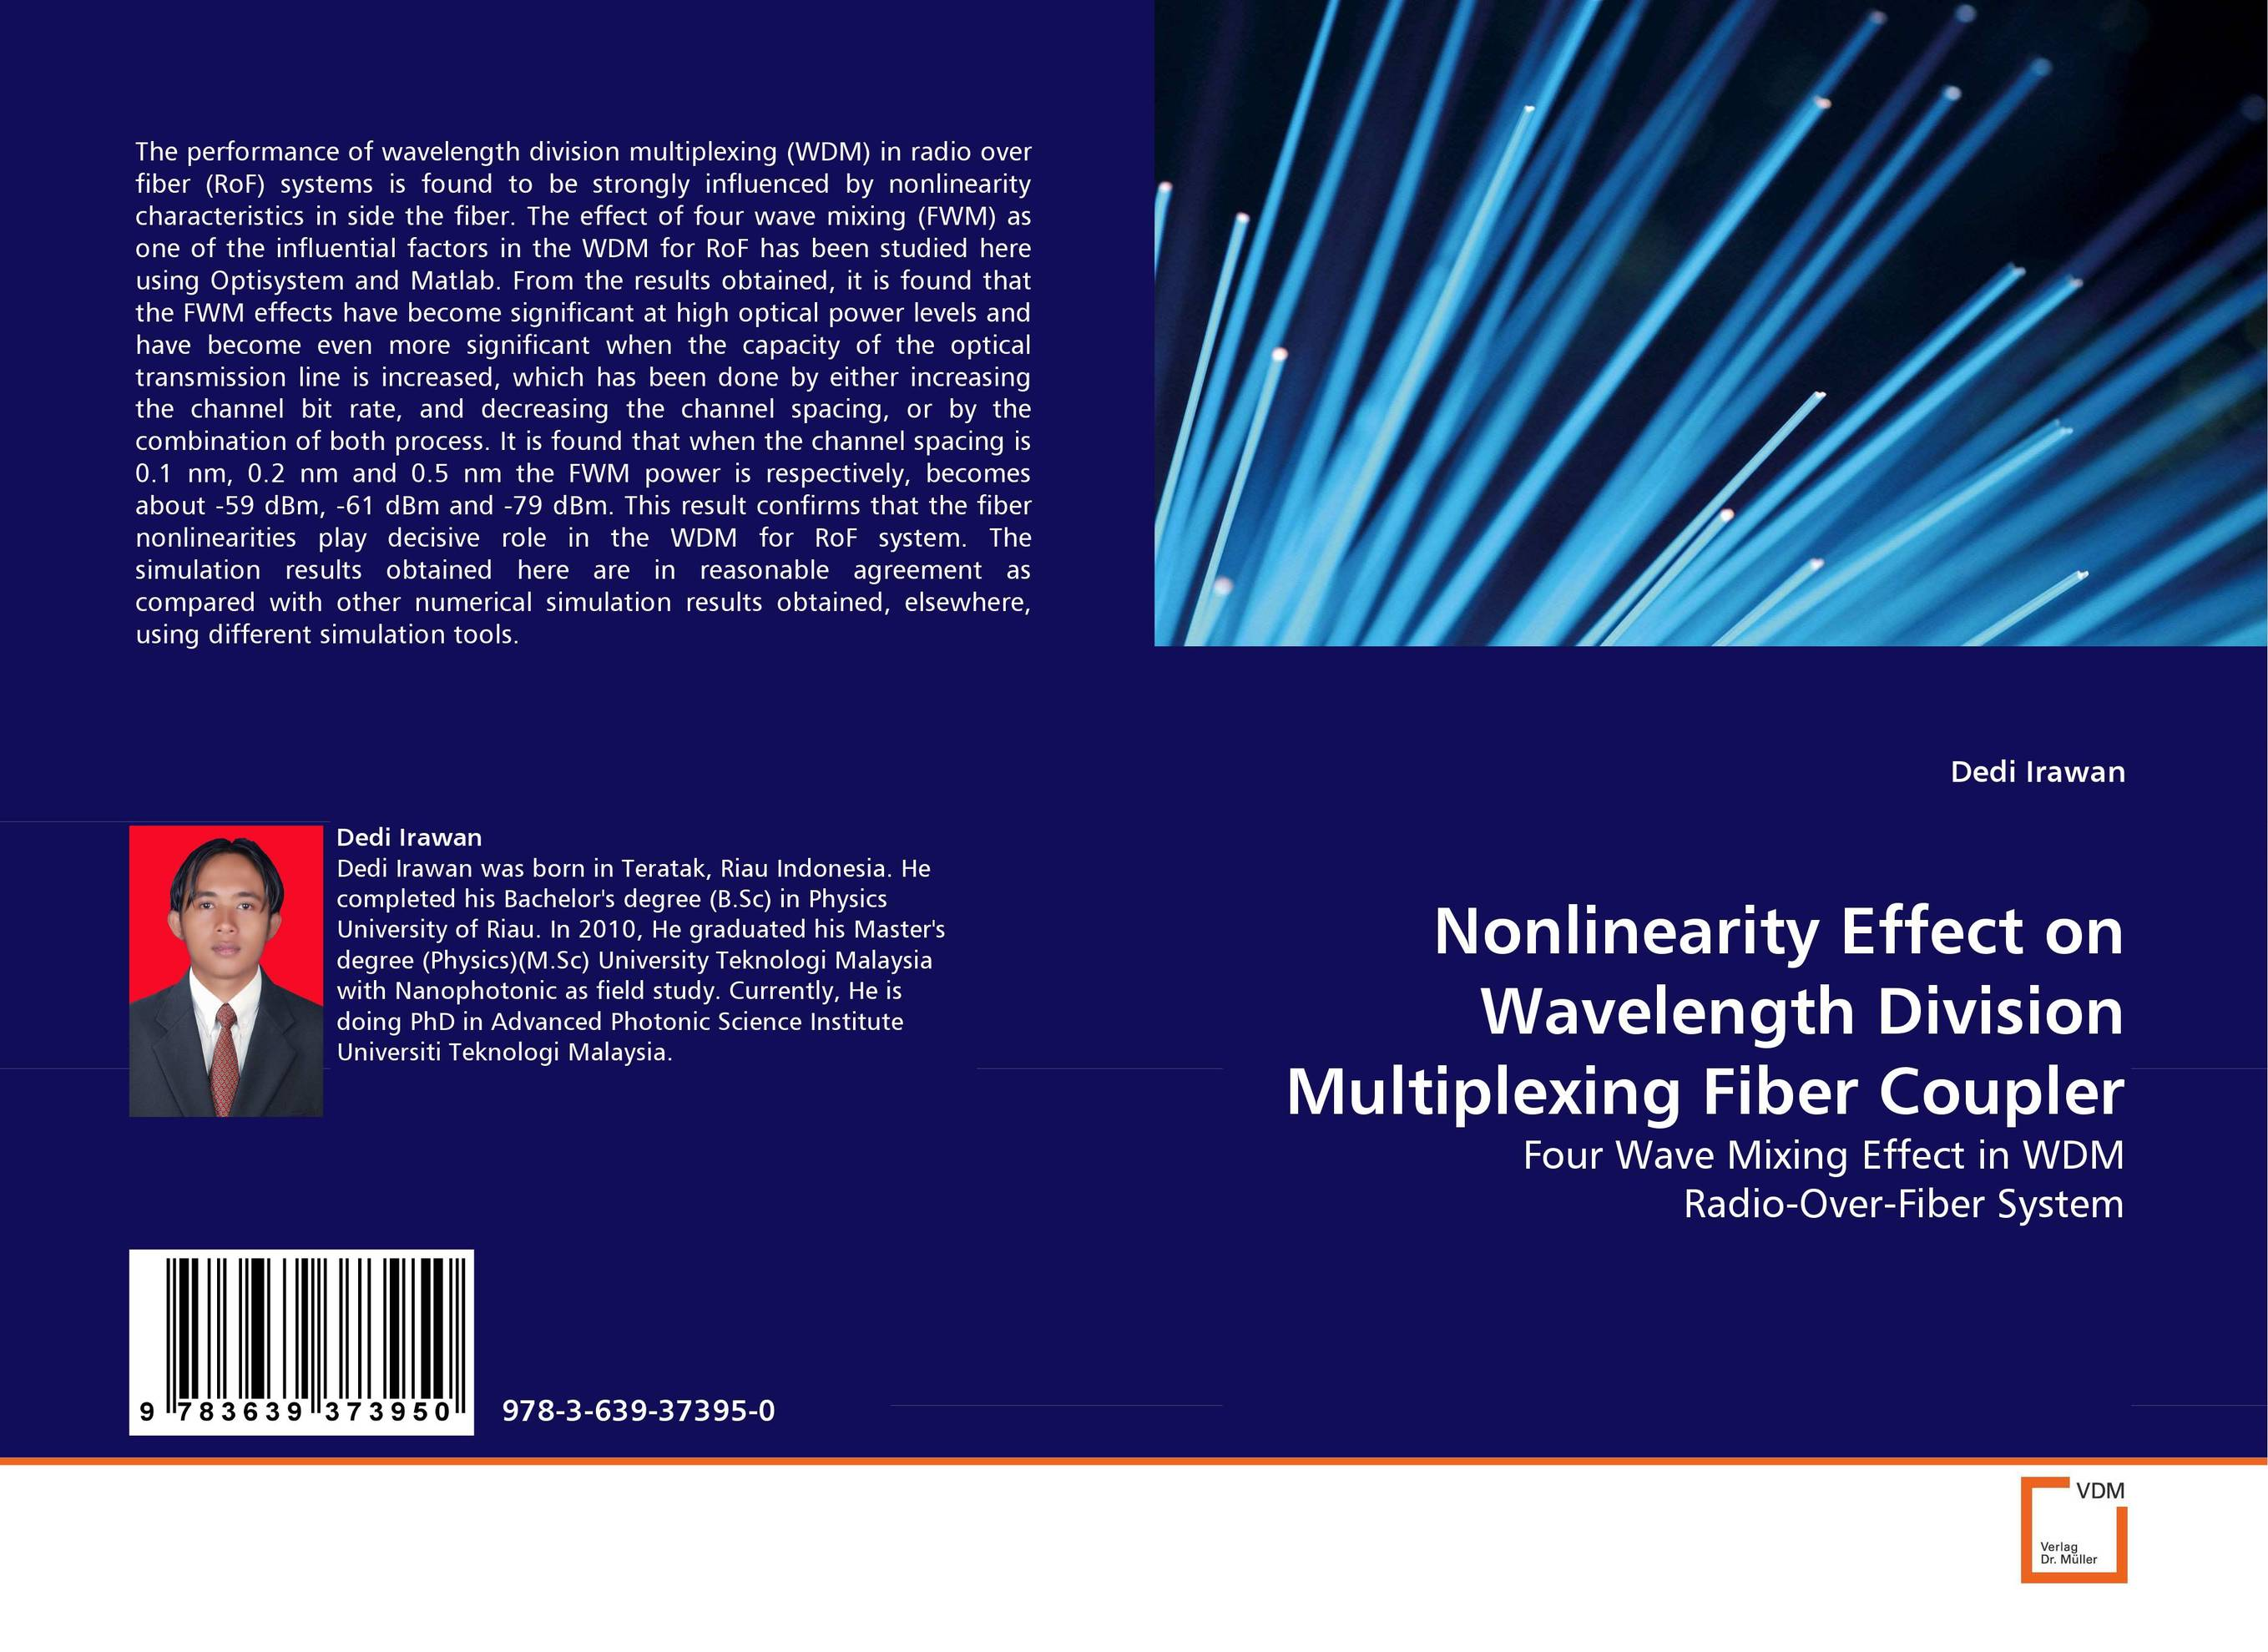 Nonlinearity Effect on Wavelength Division Multiplexing Fiber Coupler optical fiber transmission systems based on mode division multiplexing